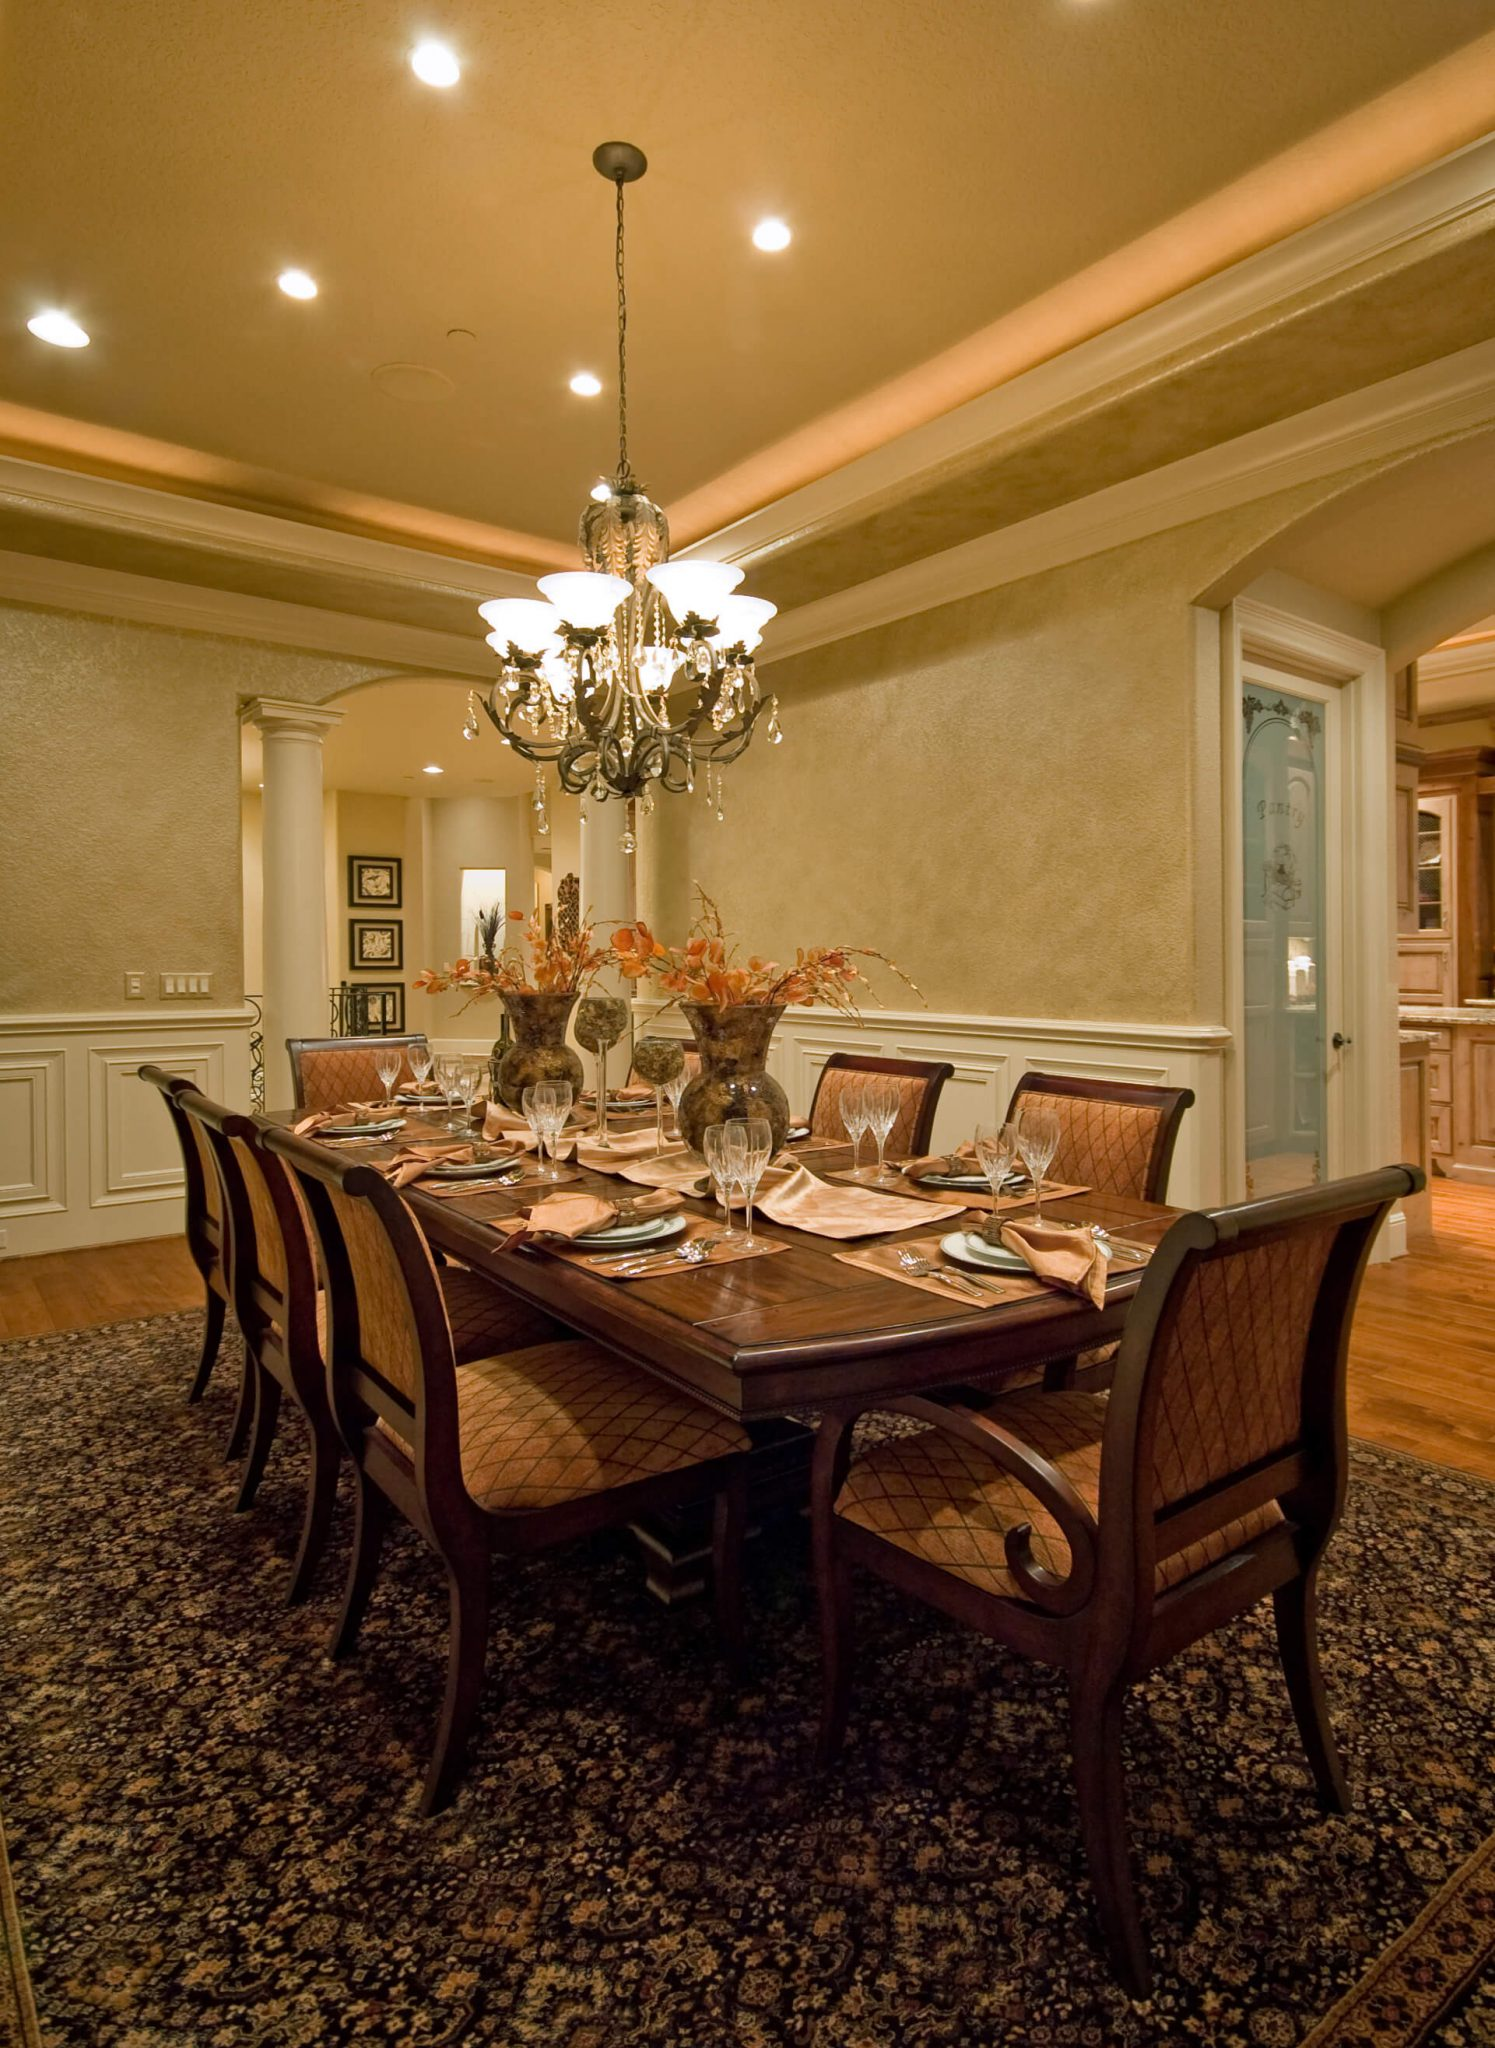 Luxury Dining Room Furniture: 126 Luxury Dining Rooms (Part 2